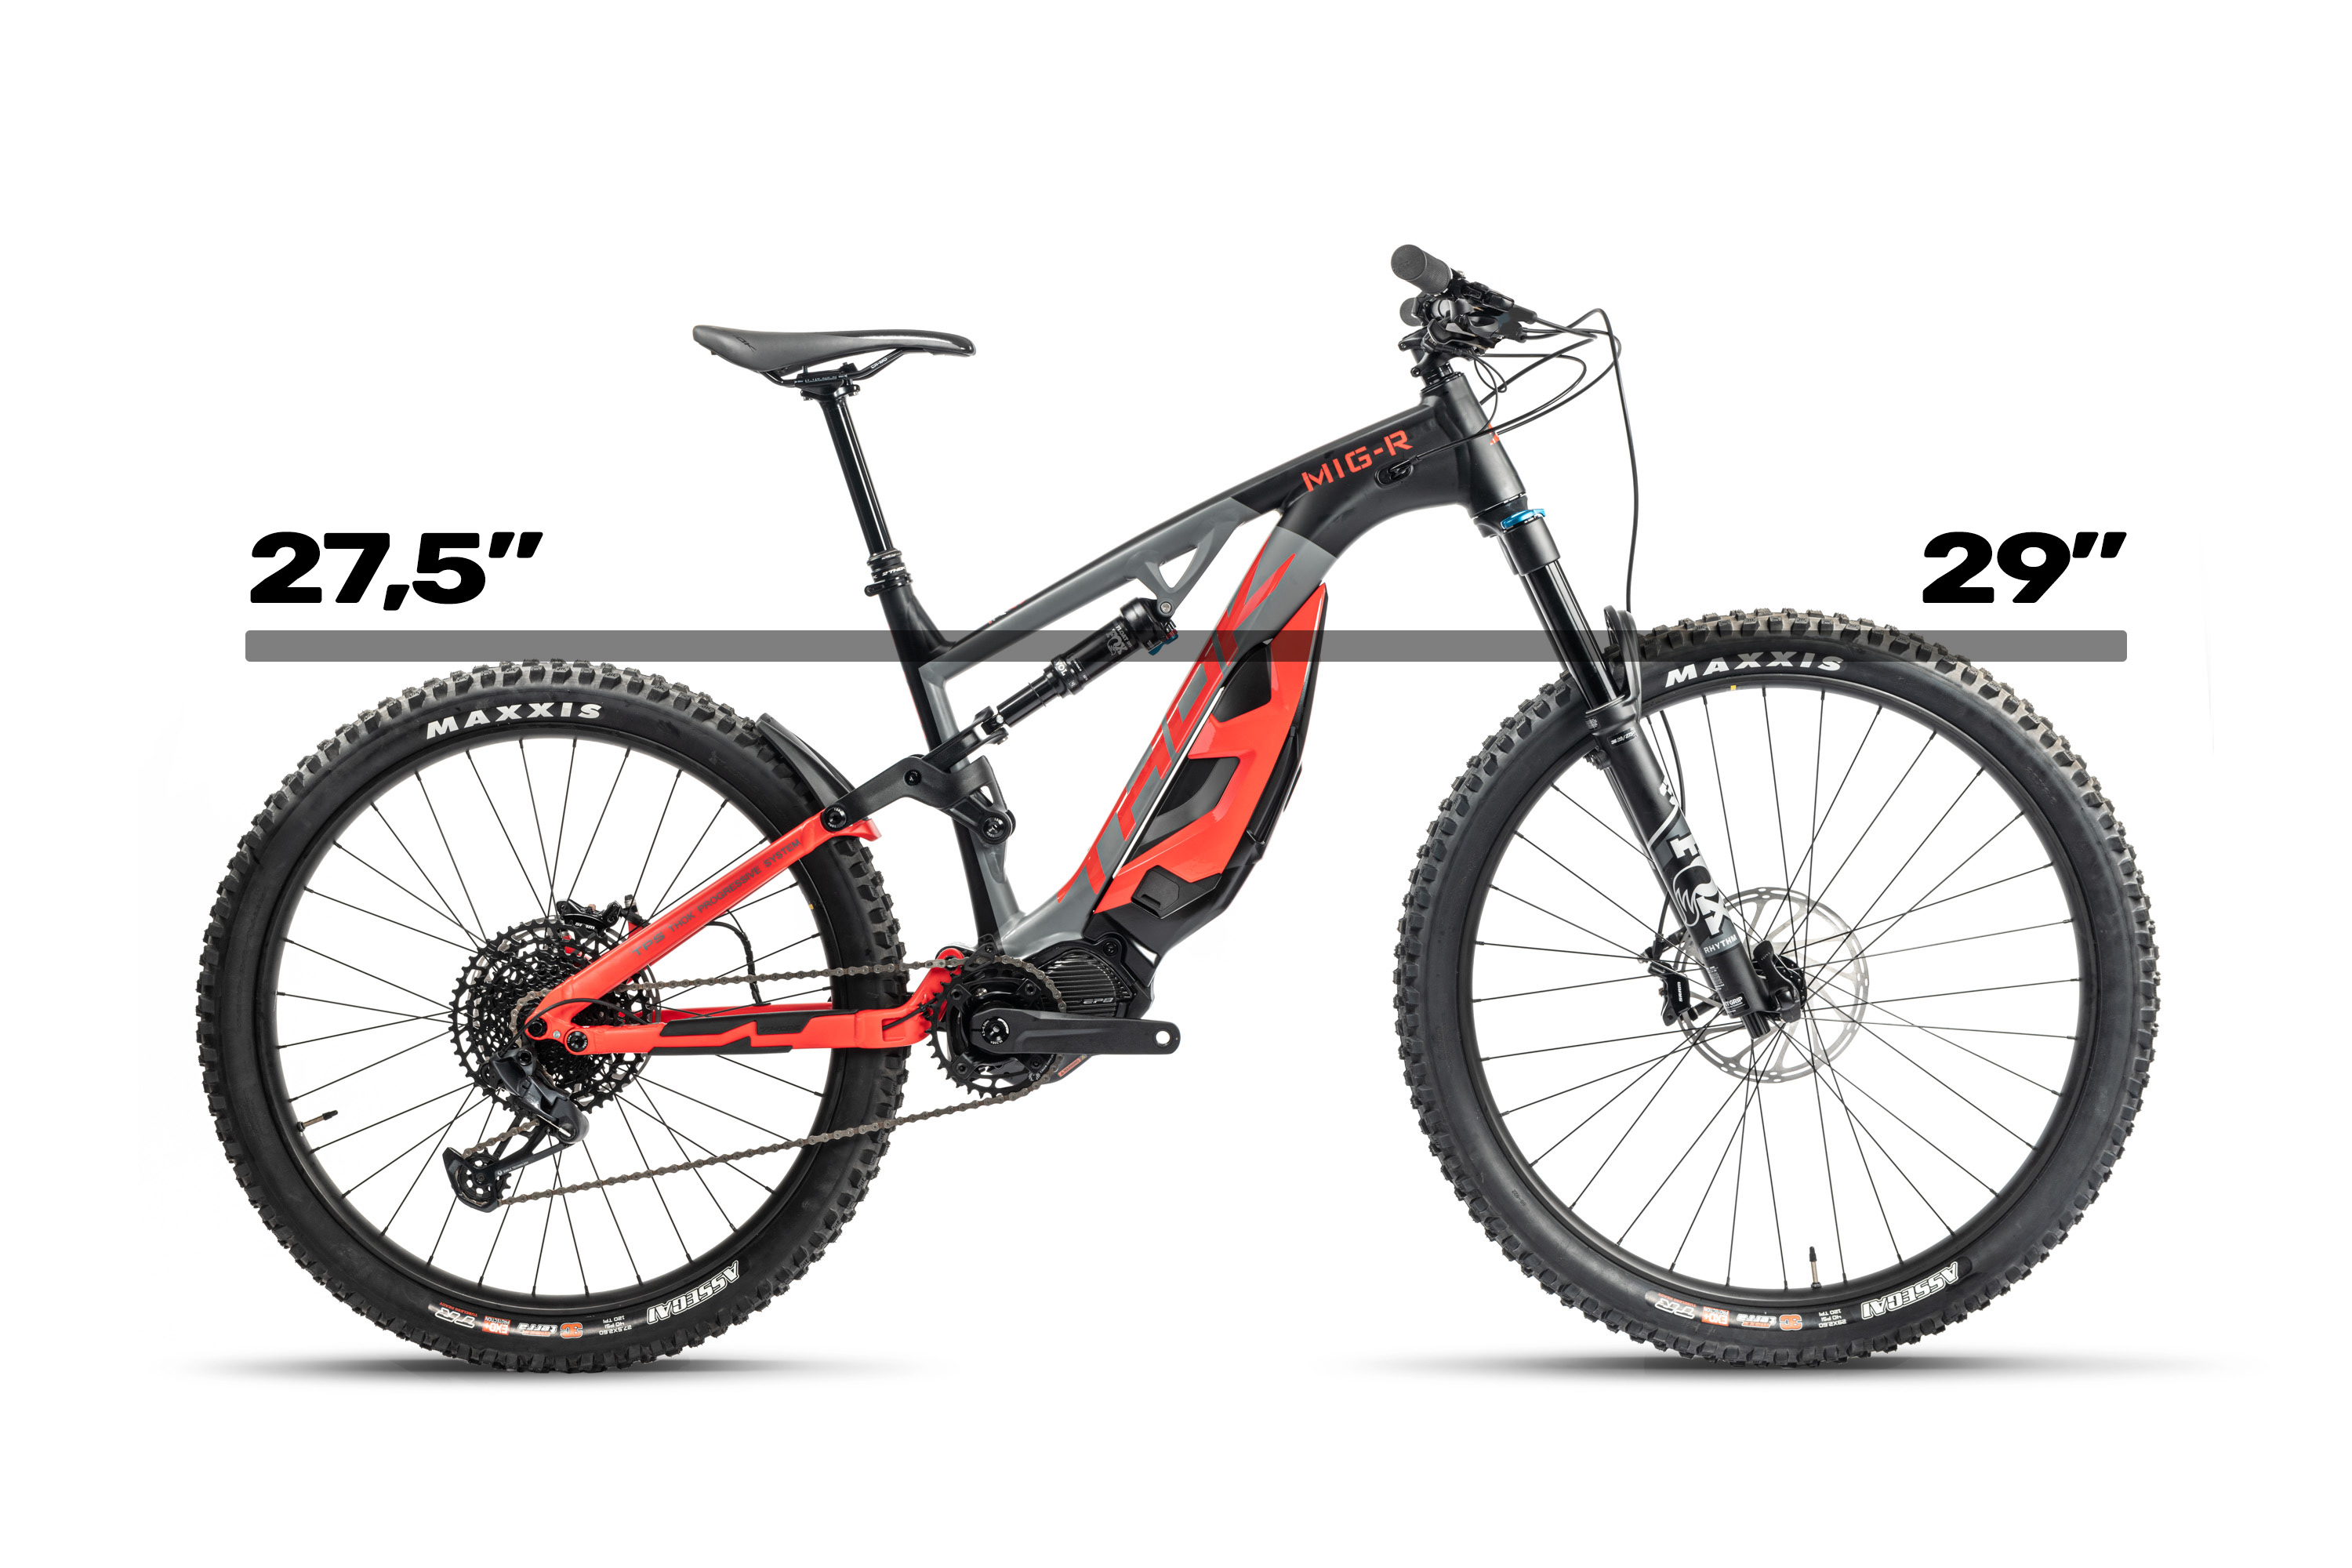 Accessories for e-bike, e-mtb and mountain bicycle. By Thok Ebikes.